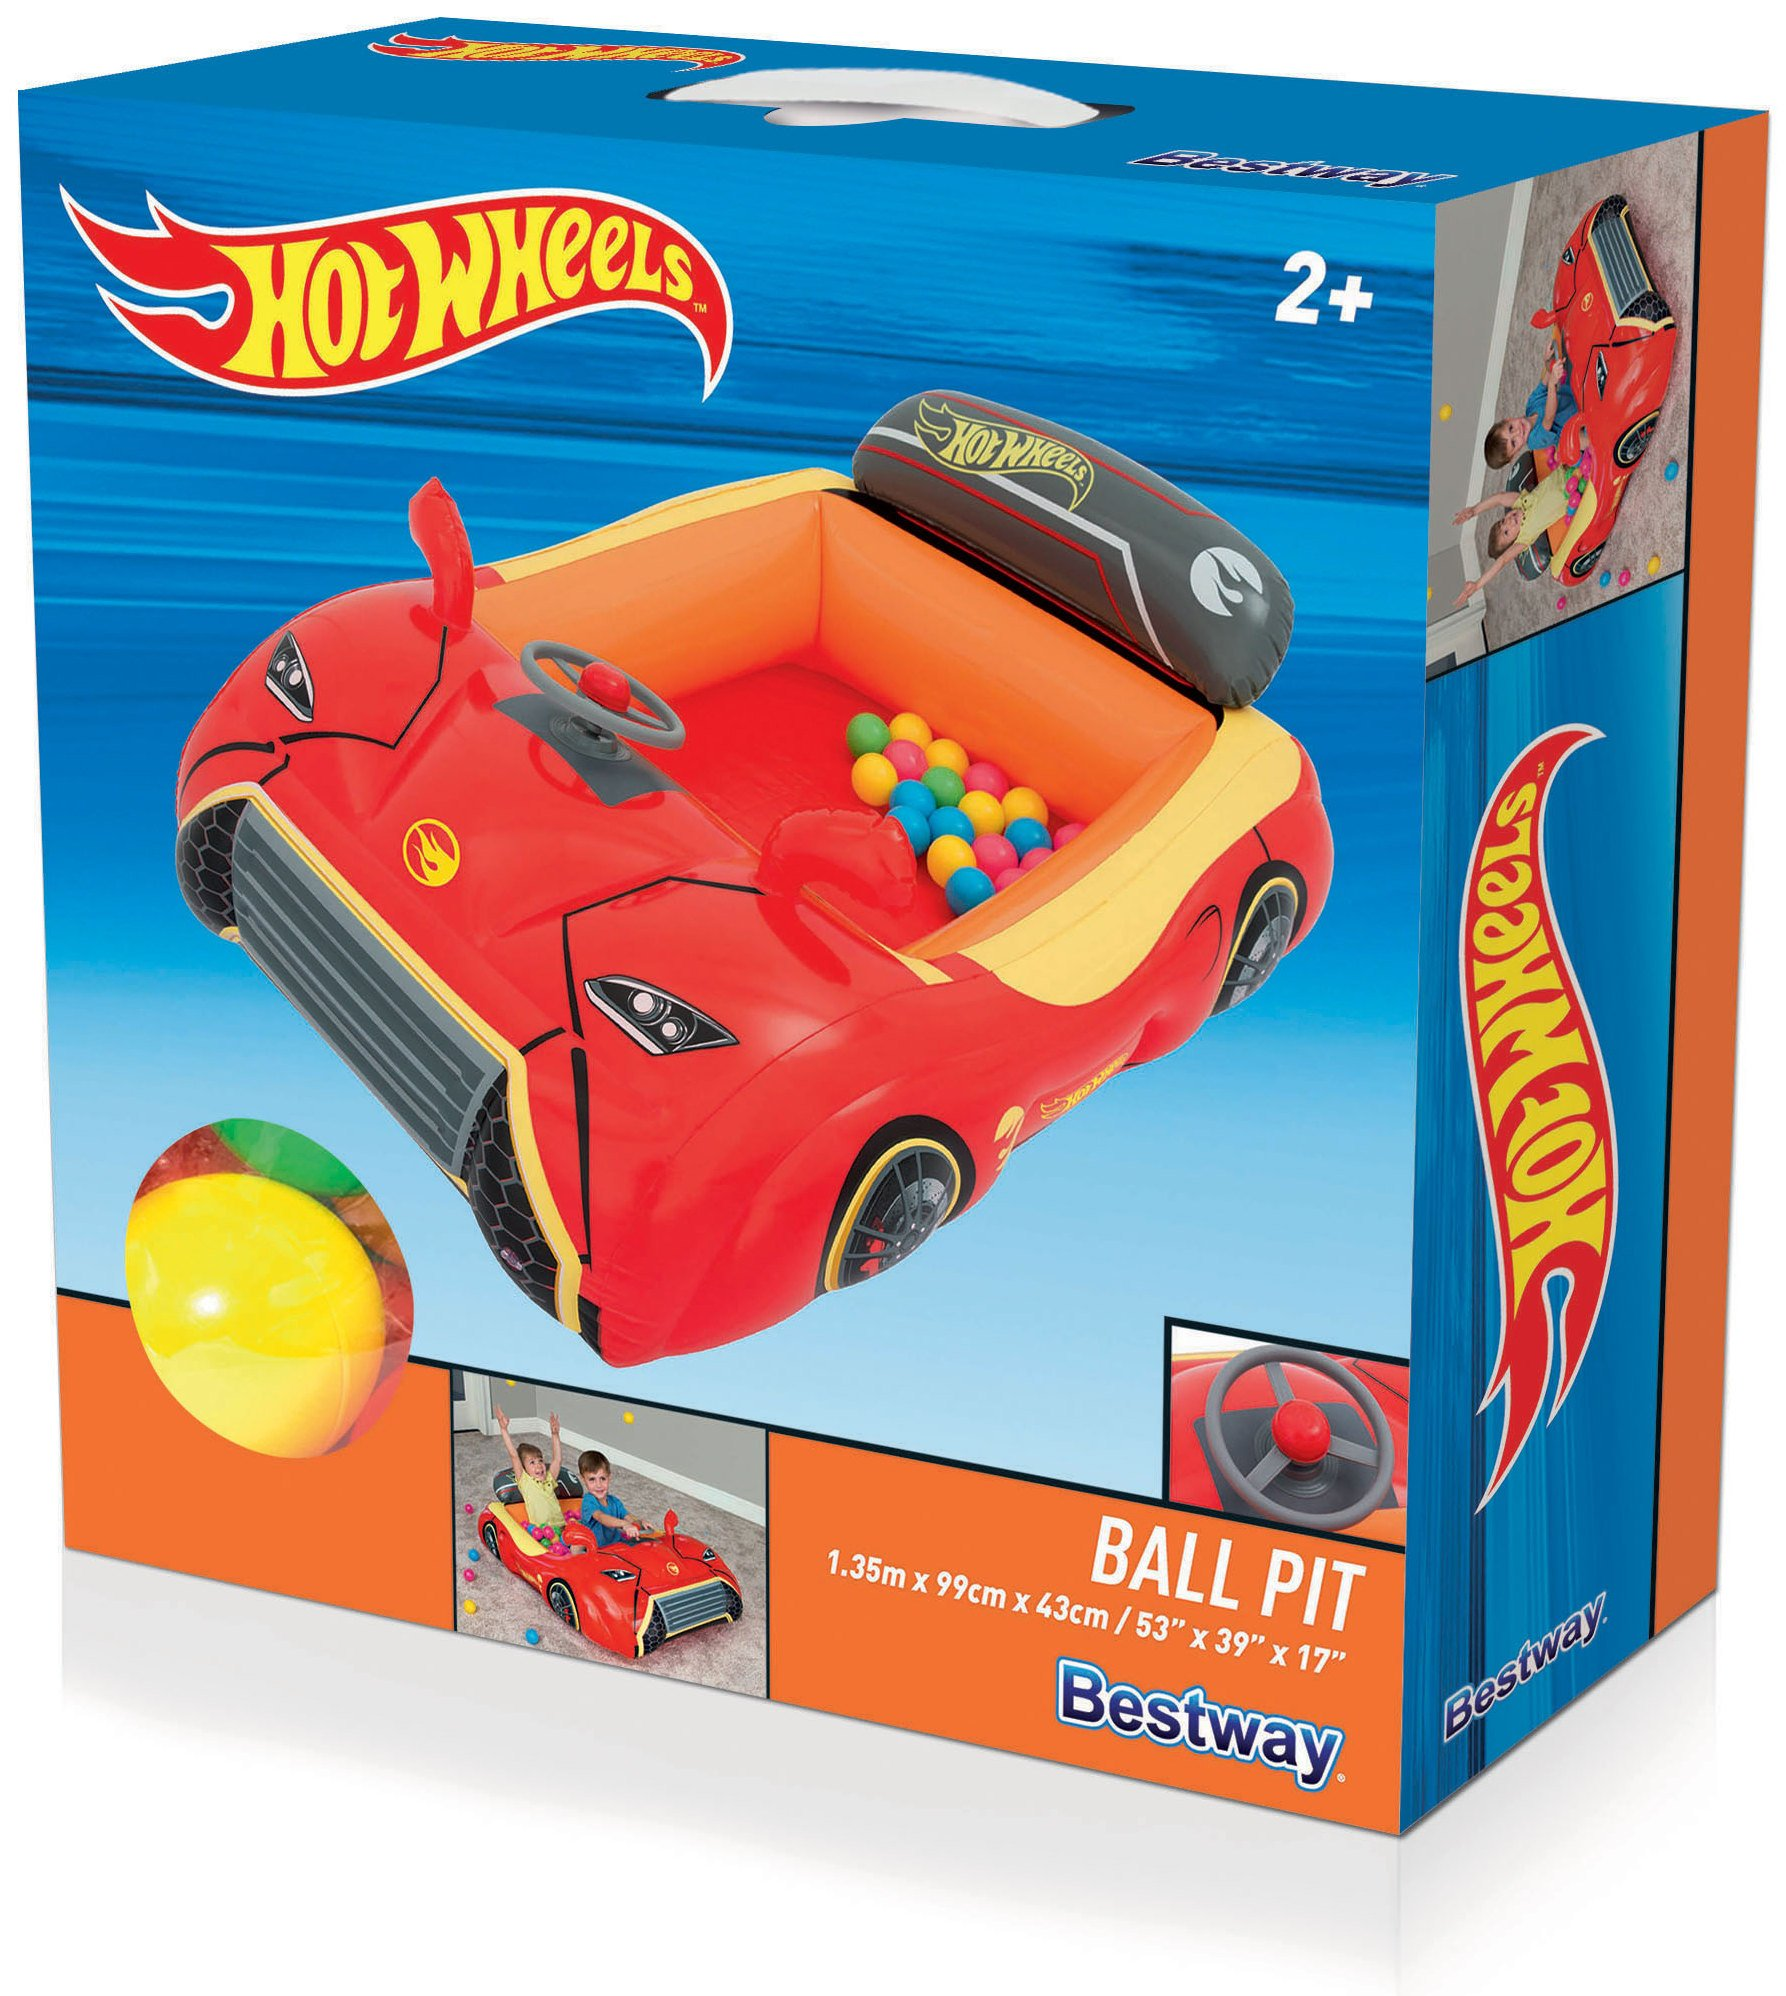 Bestway Hot Wheels Children's Inflatable Car Ball Pit, Includes 25 Balls by Bestway (Image #3)